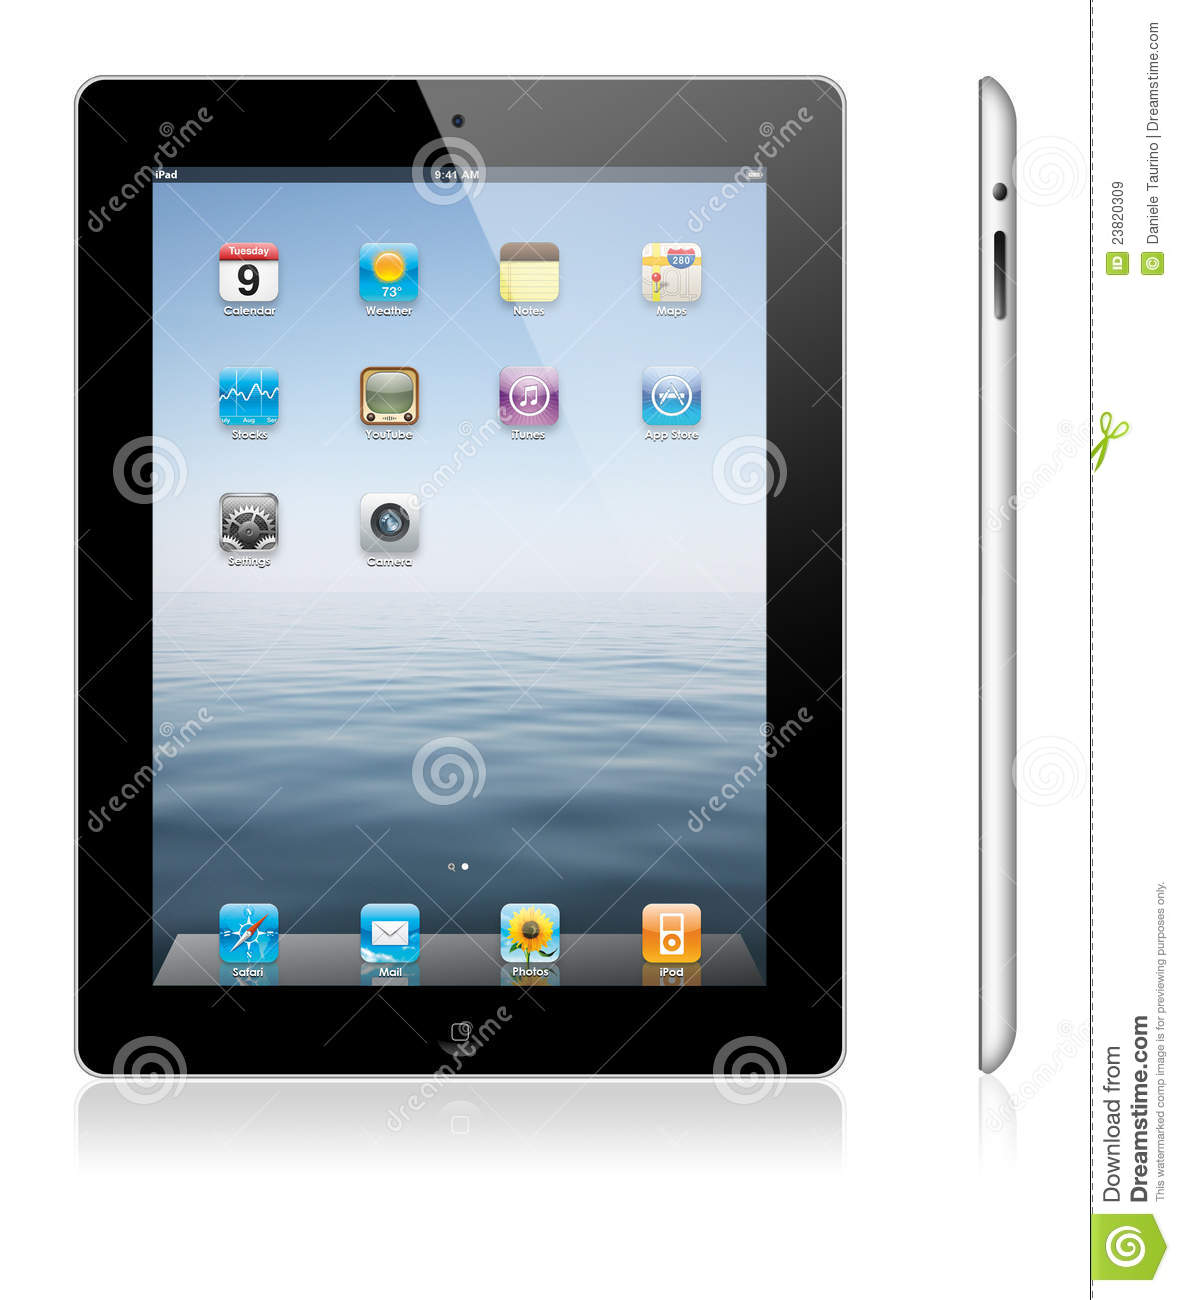 Neues Apple iPad 3